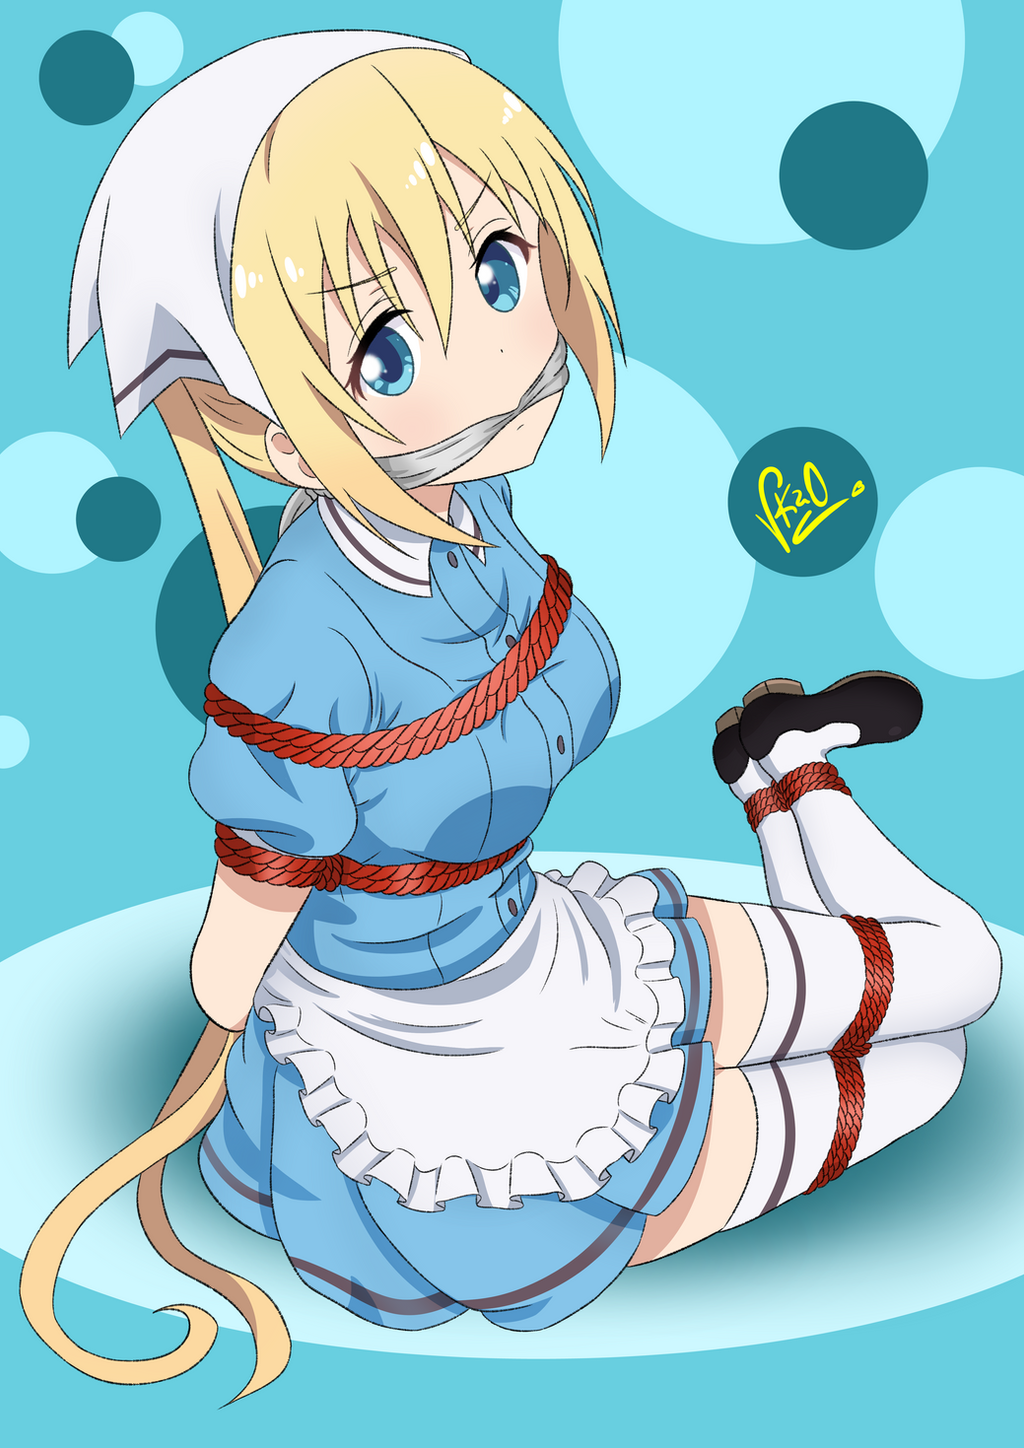 Anime girl tied up and gagged